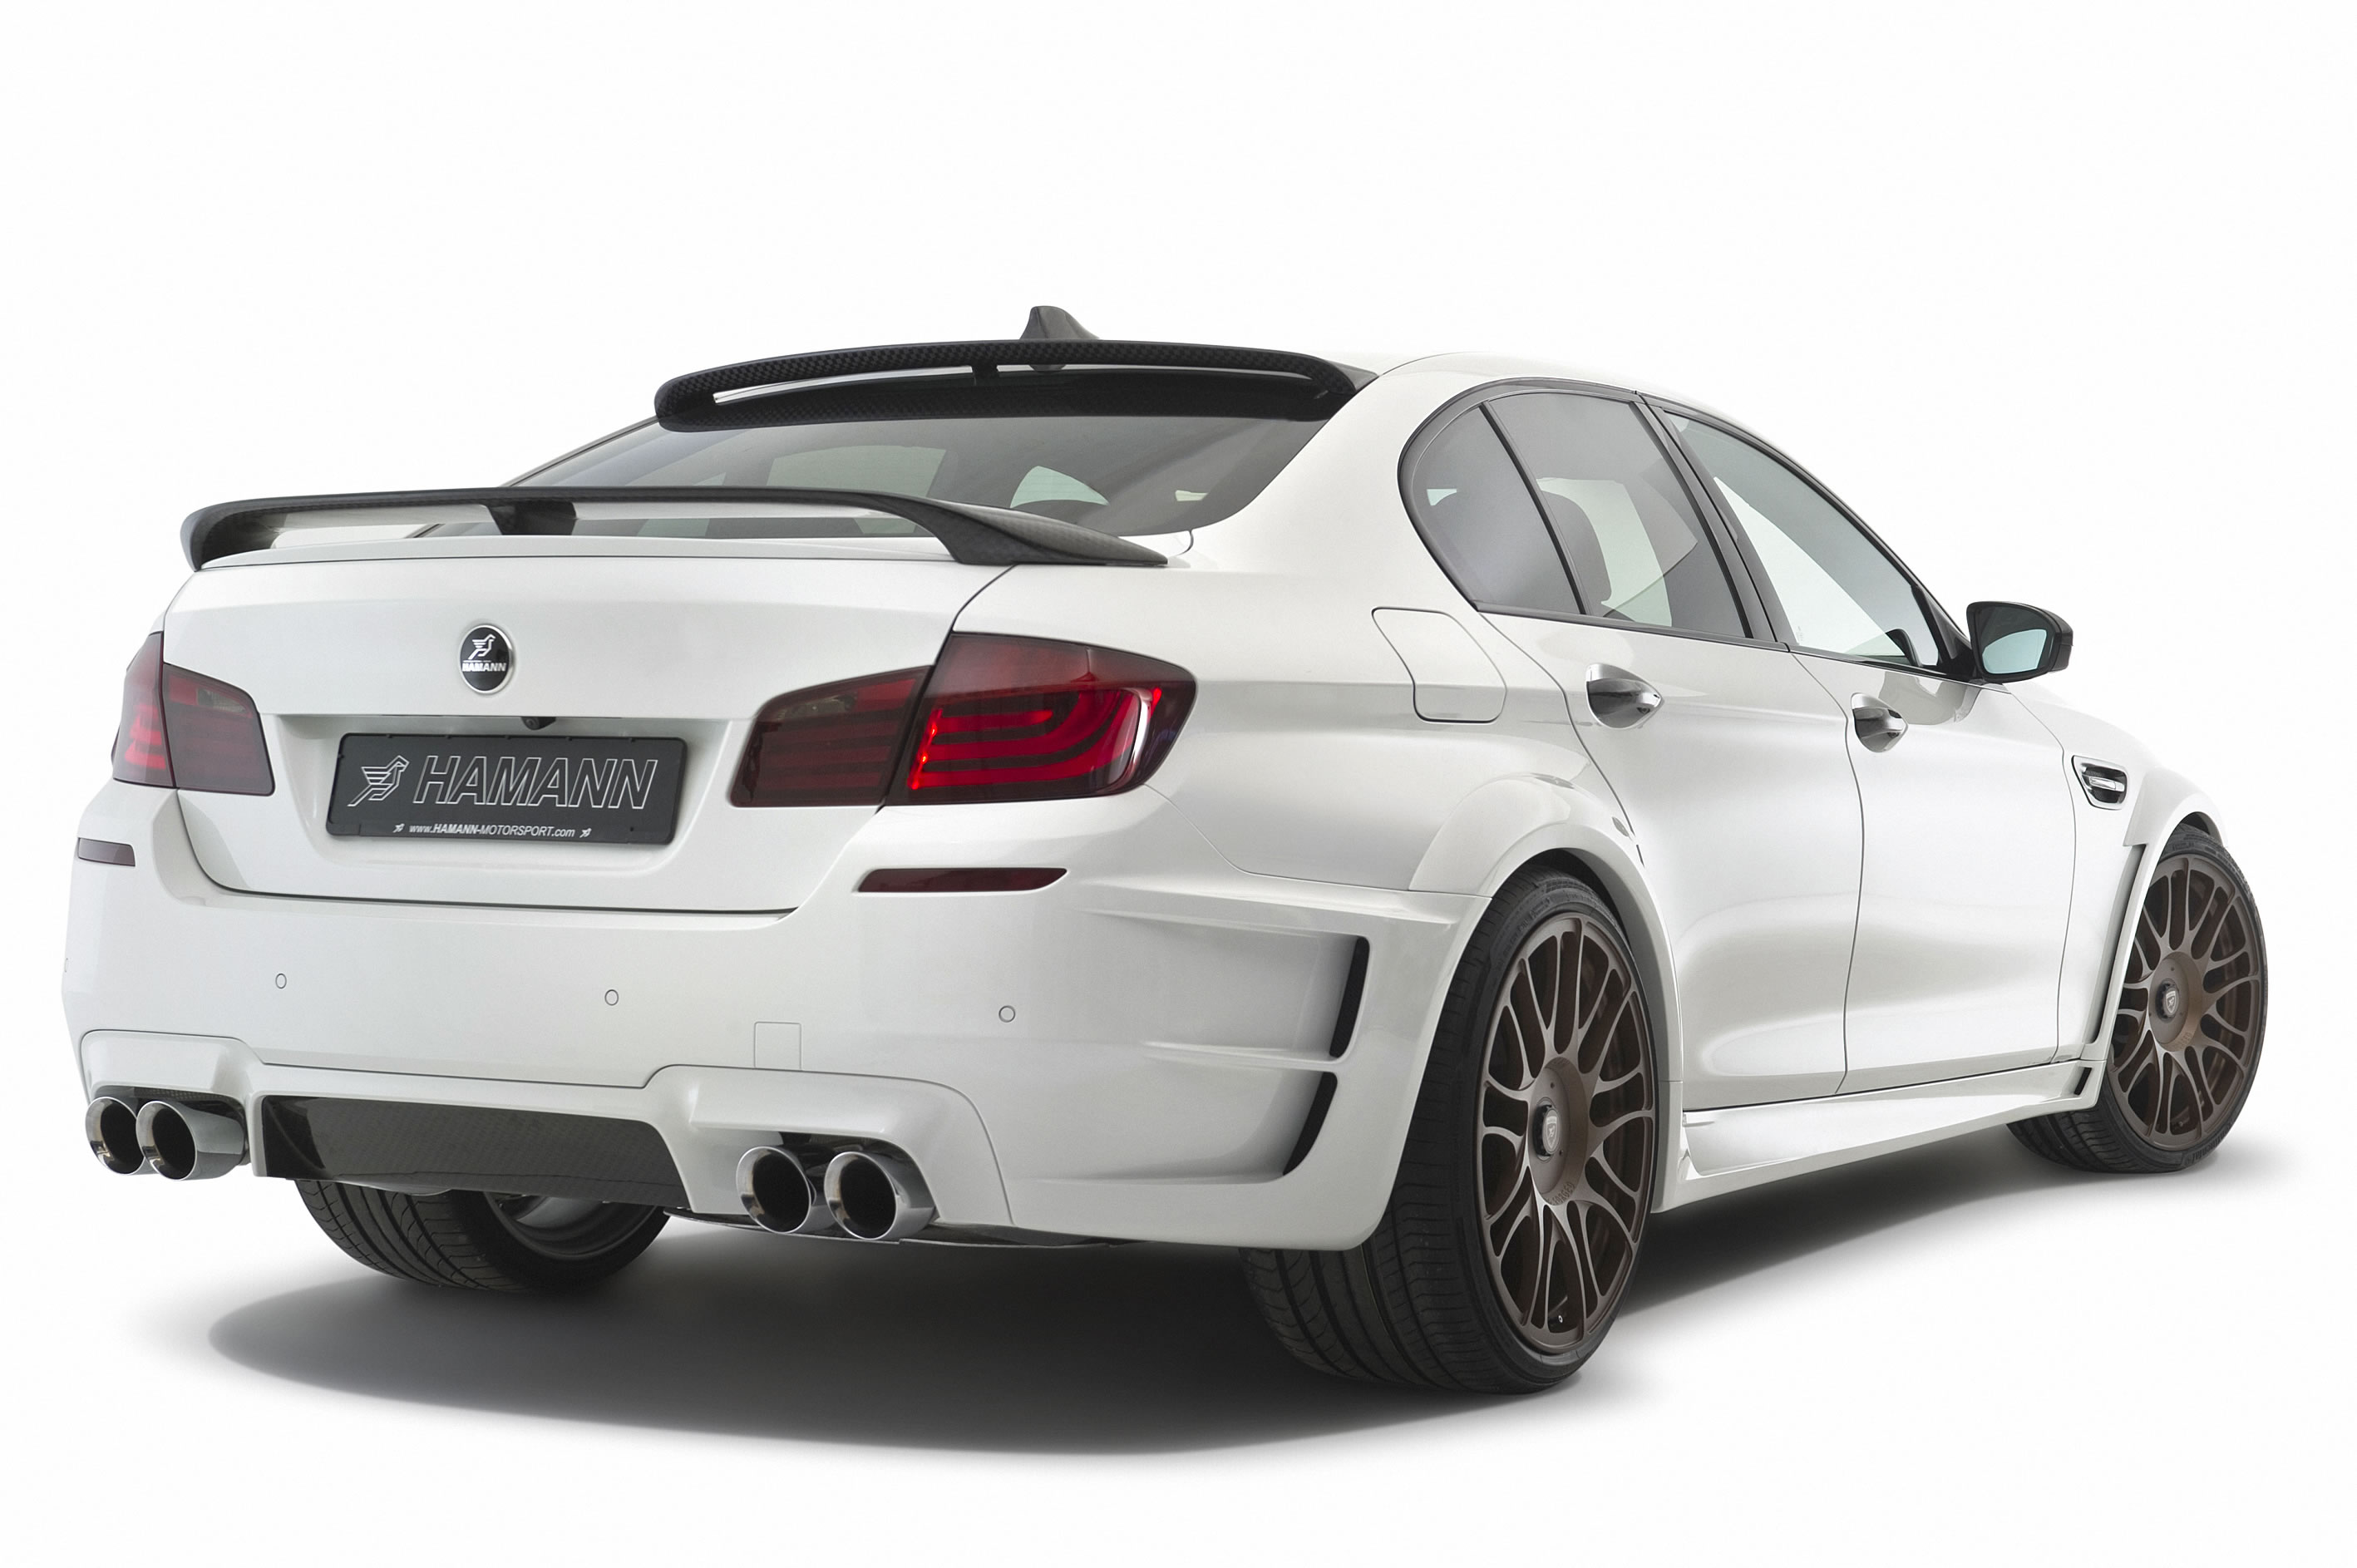 2013 Bmw M5 Widebody By Hamann Photos Specs And Review Rs